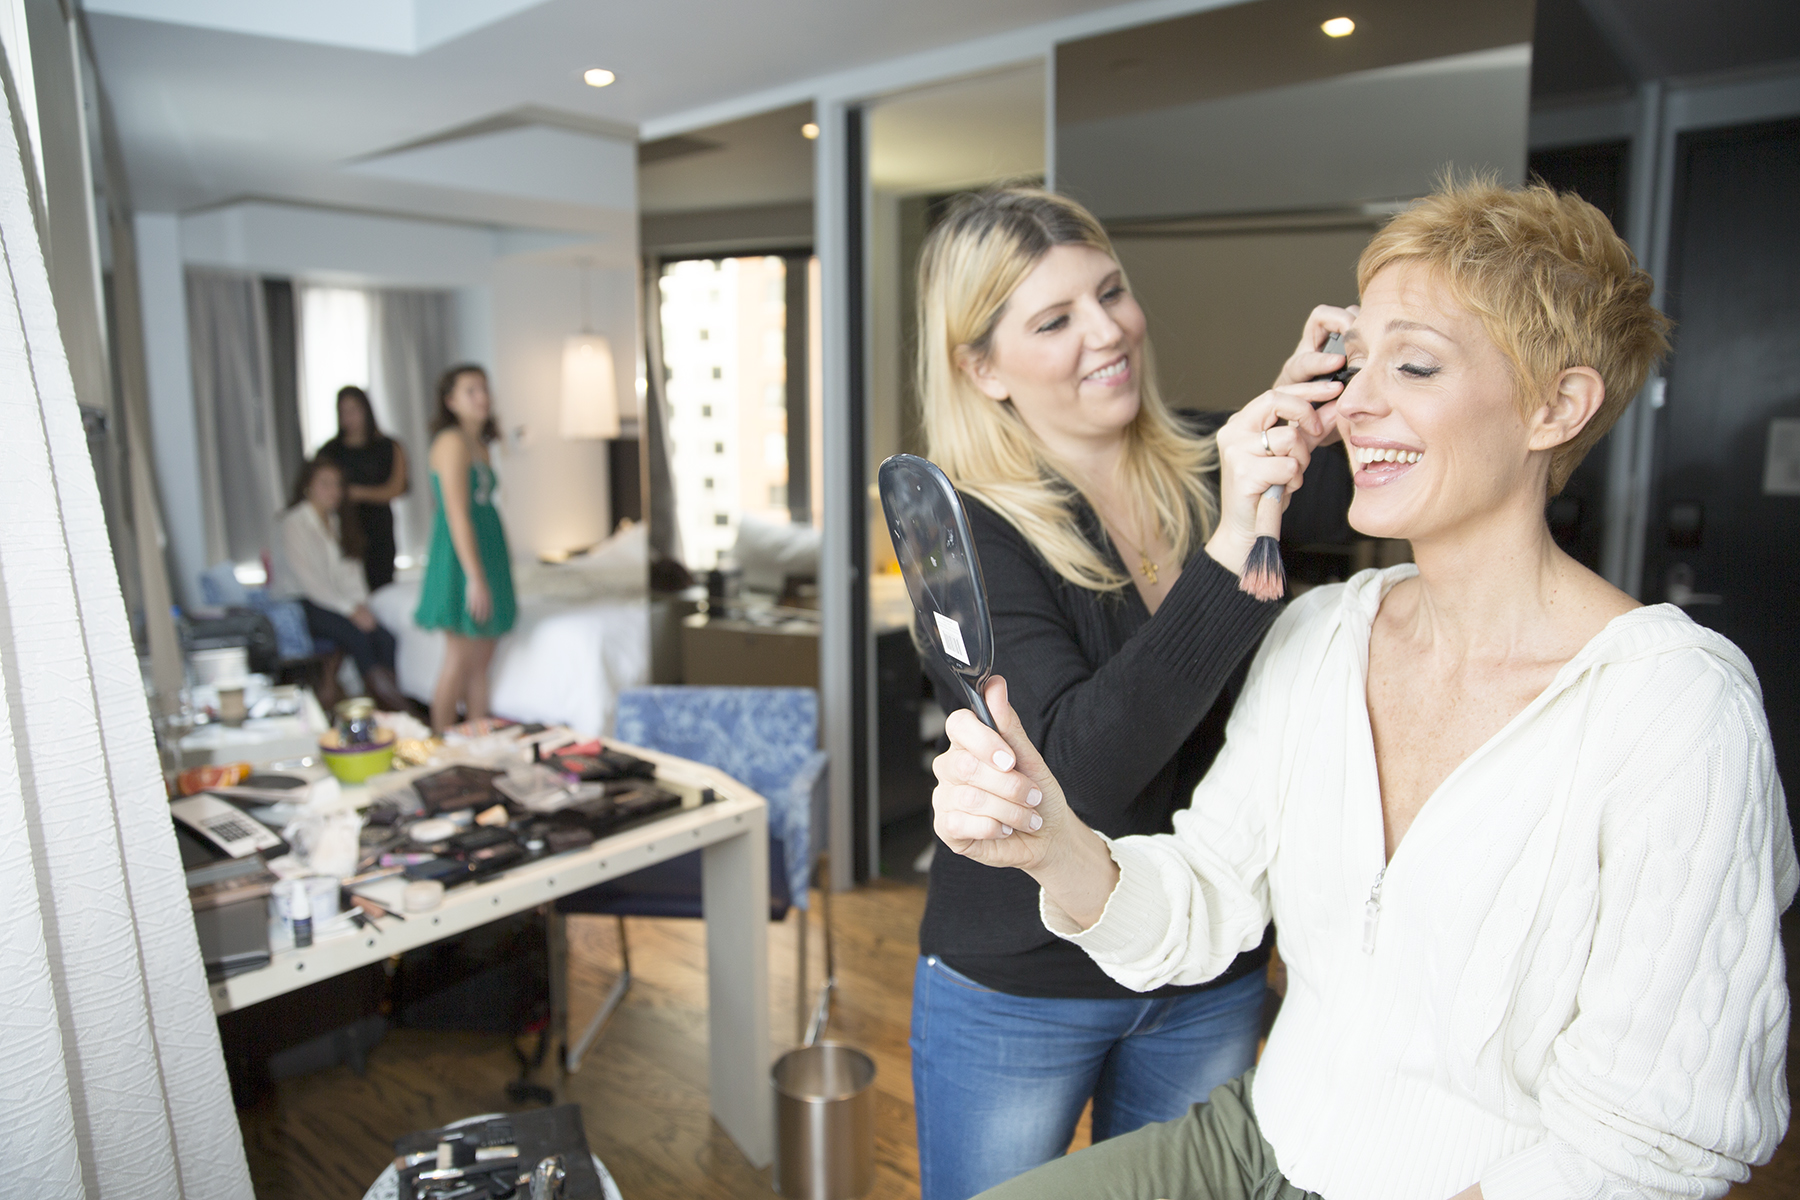 Stacie Ford wedding make up artist helps bride to be Connie look glamorous for her wedding.